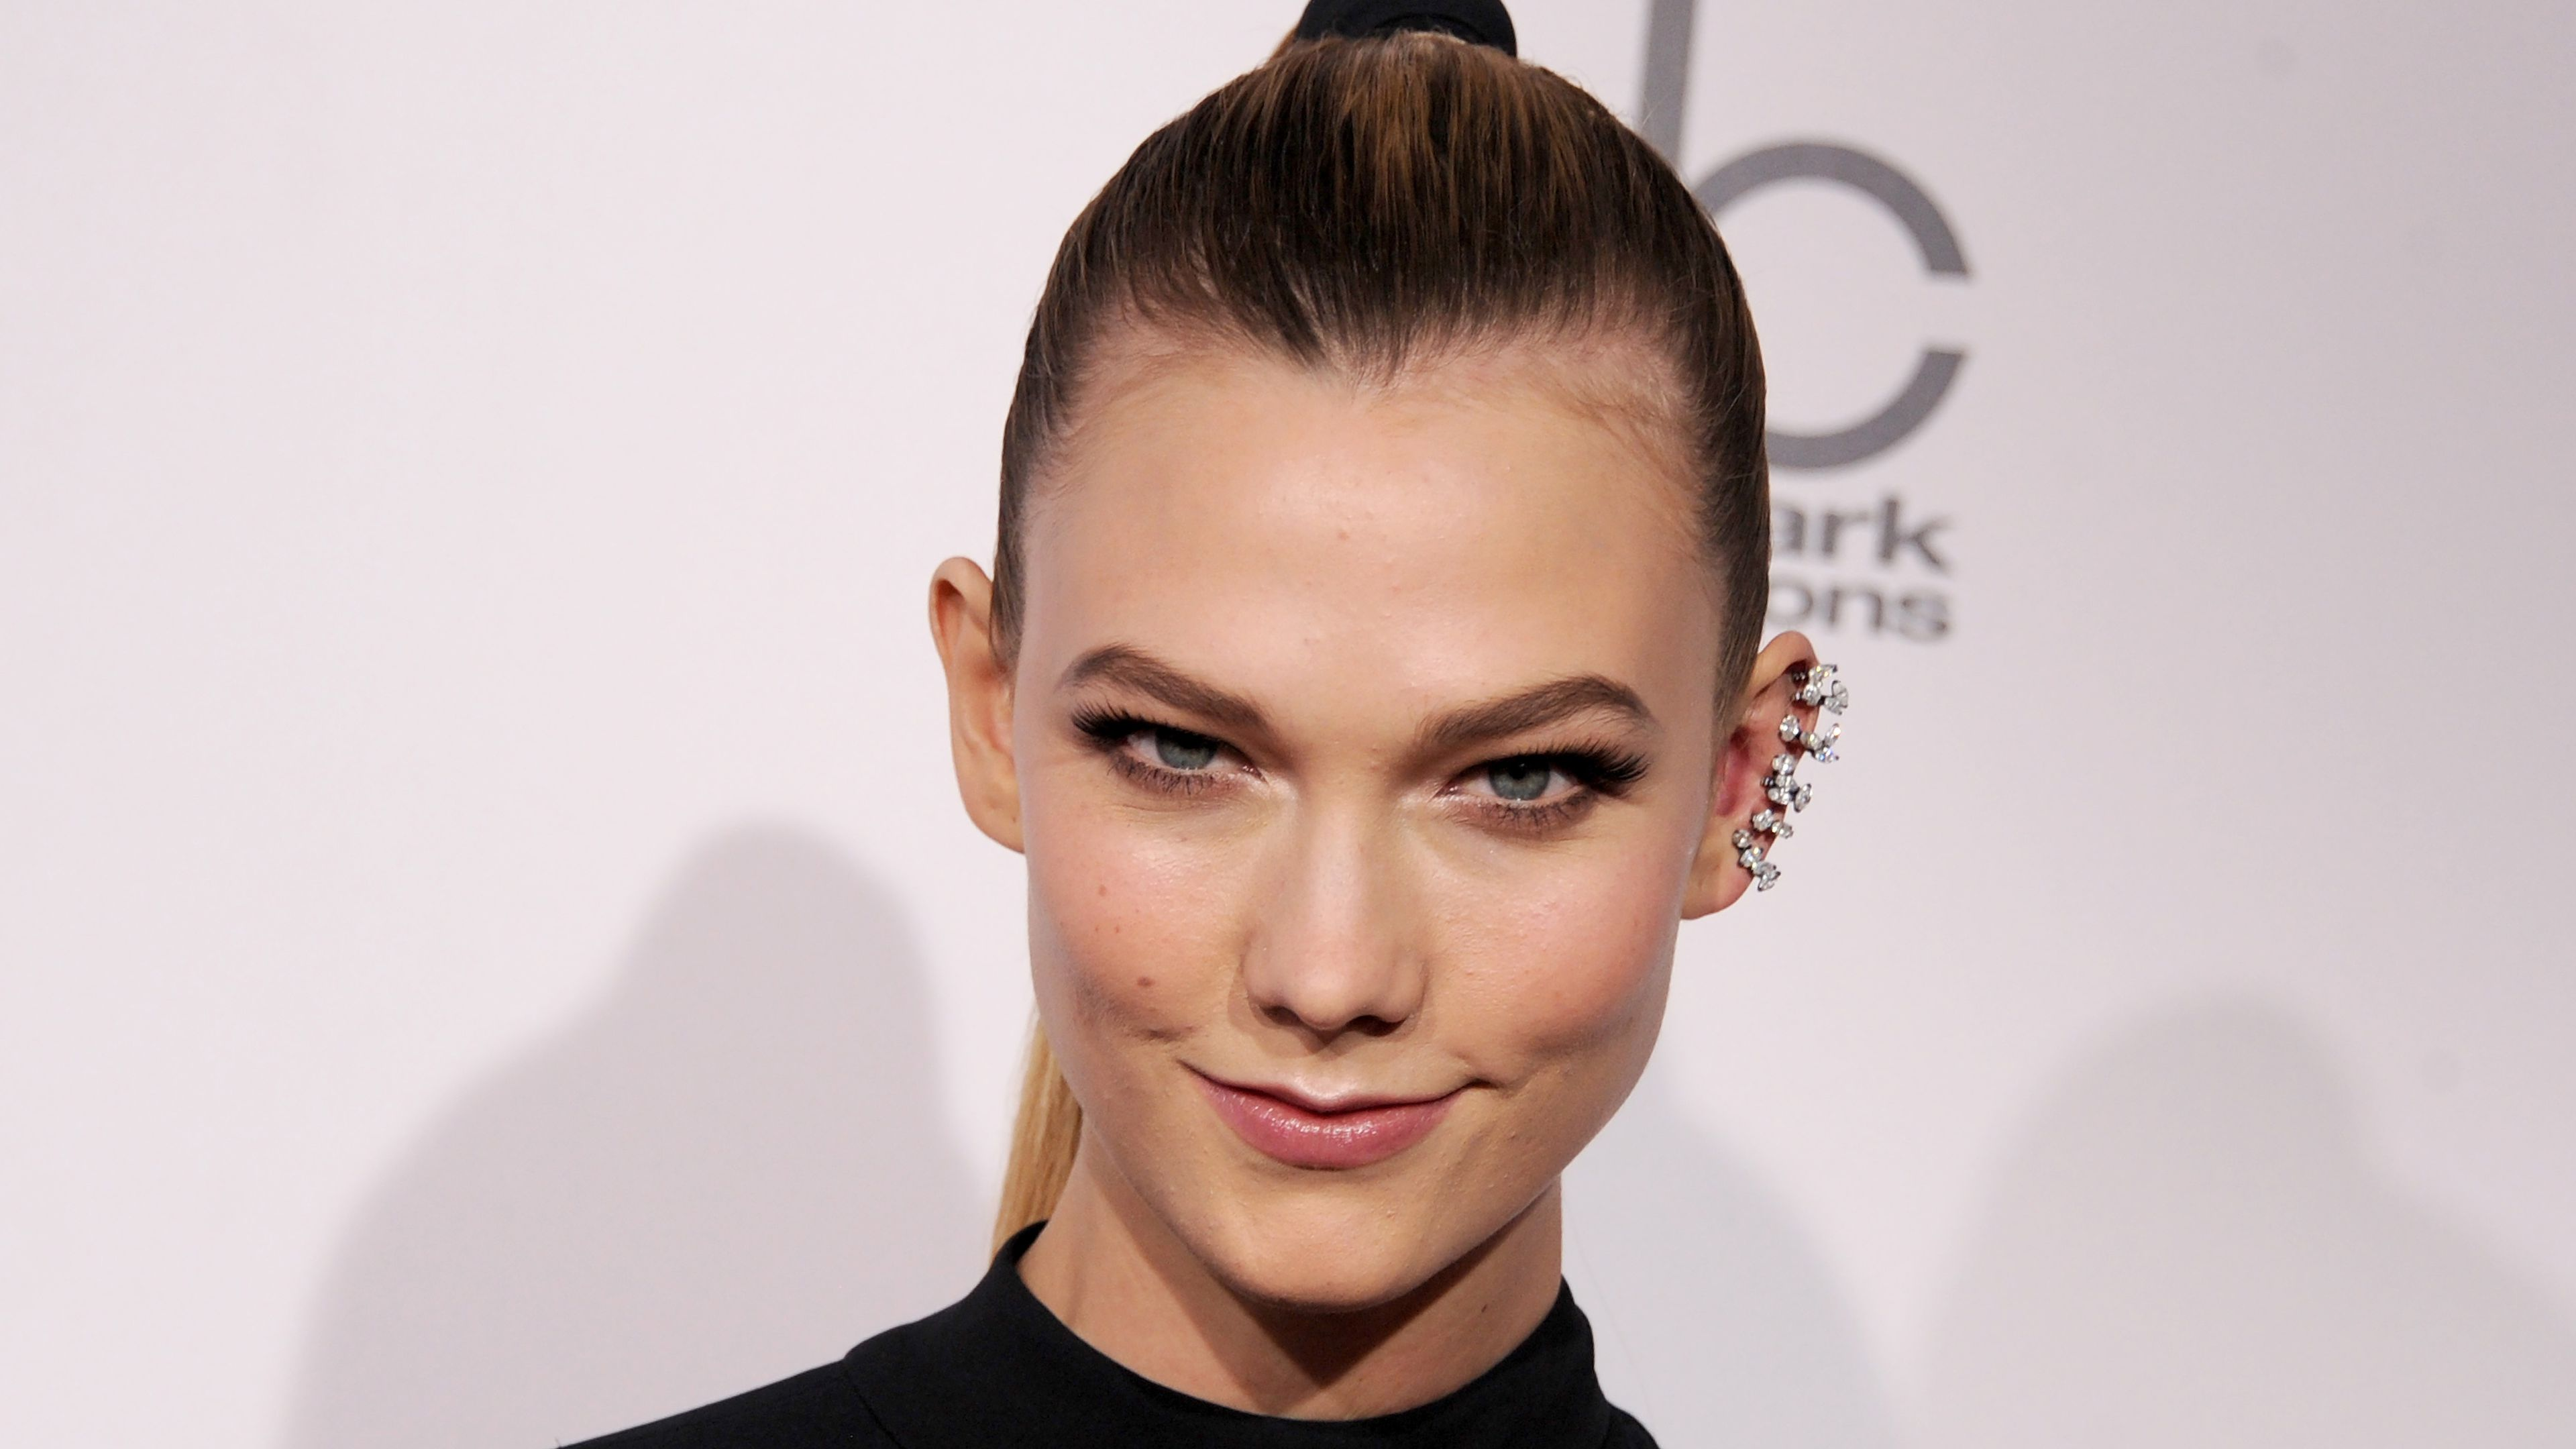 Karlie Kloss walks out on Victoria's Secret